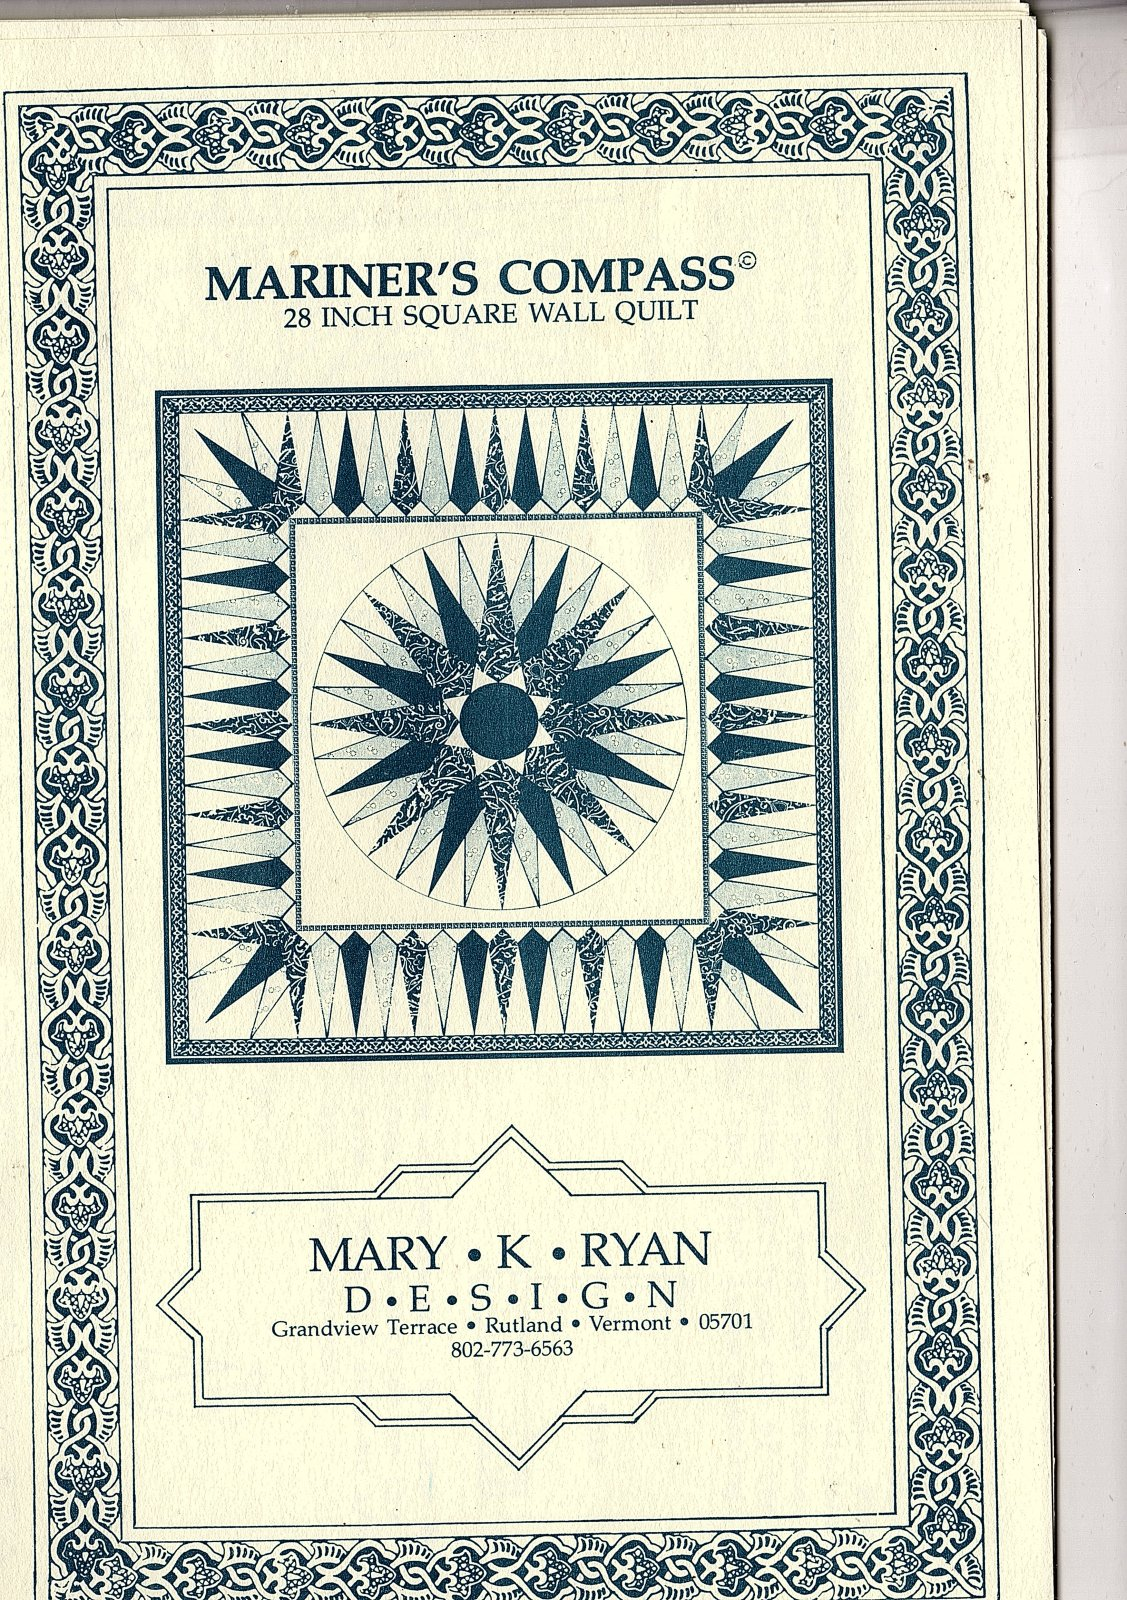 Mariner's Compass - Mary K Ryan Design - 28 square wall quilt